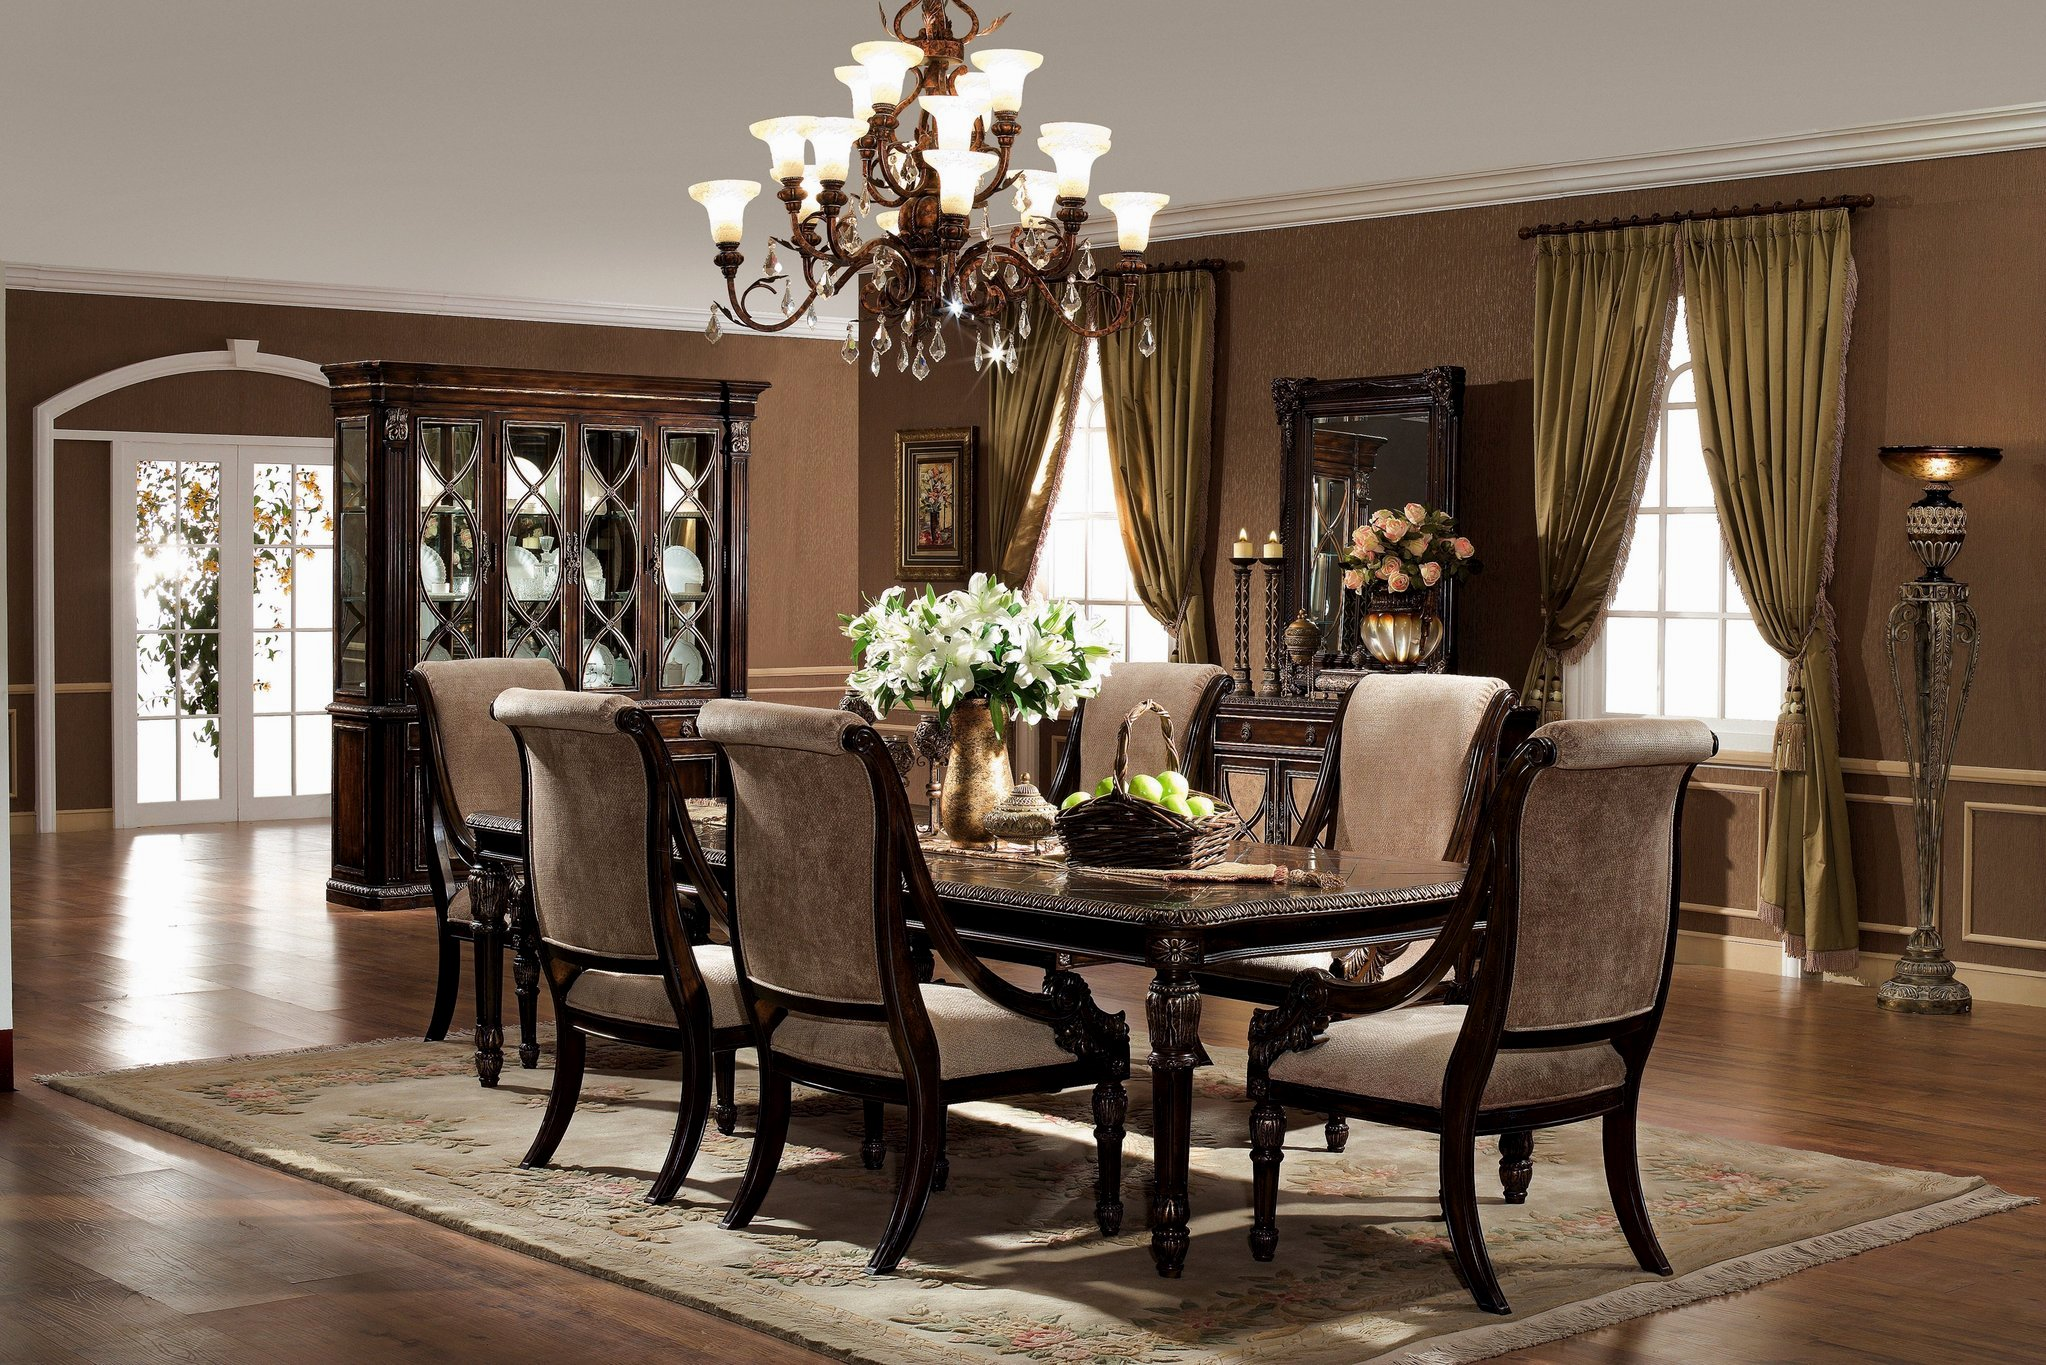 Kitchen & Dining Sets: Best Formal Dining Room Sets For Home Design ...